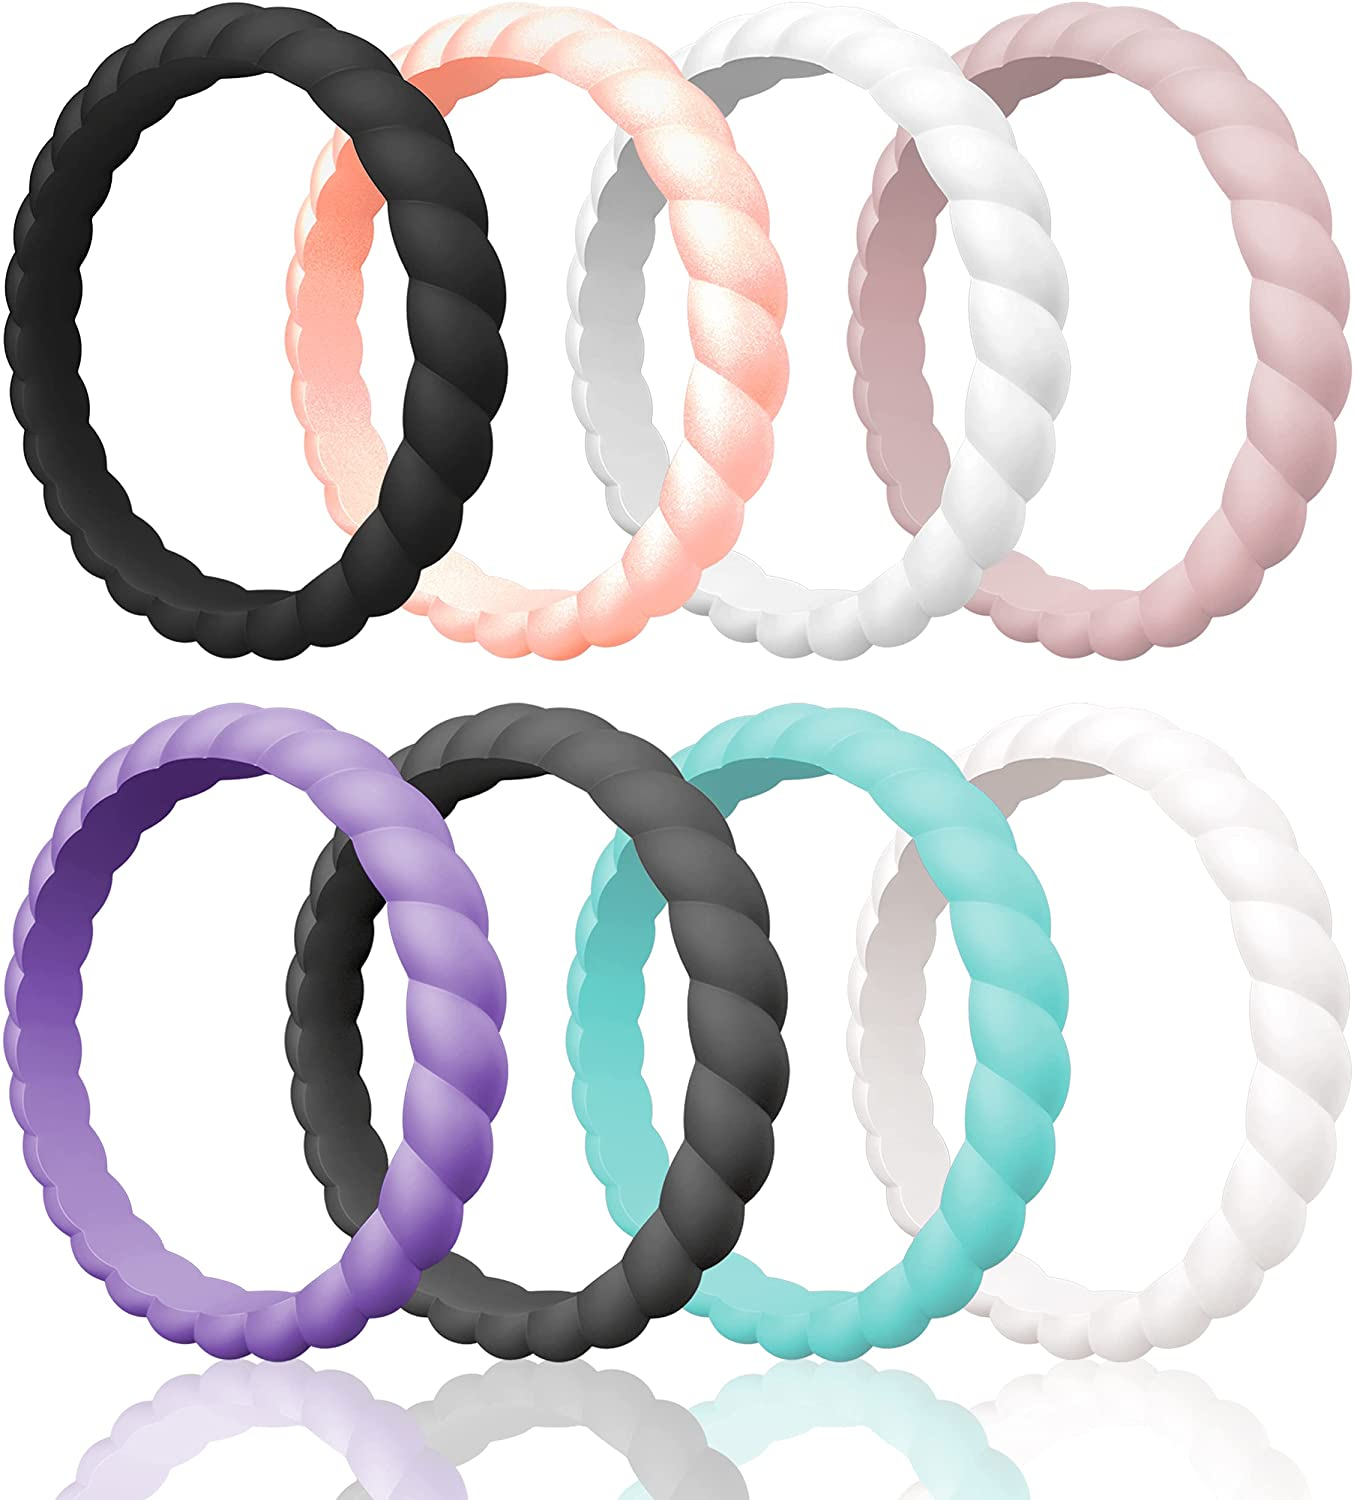 ThunderFit Thin Braided Silicone Wedding Rings for Women